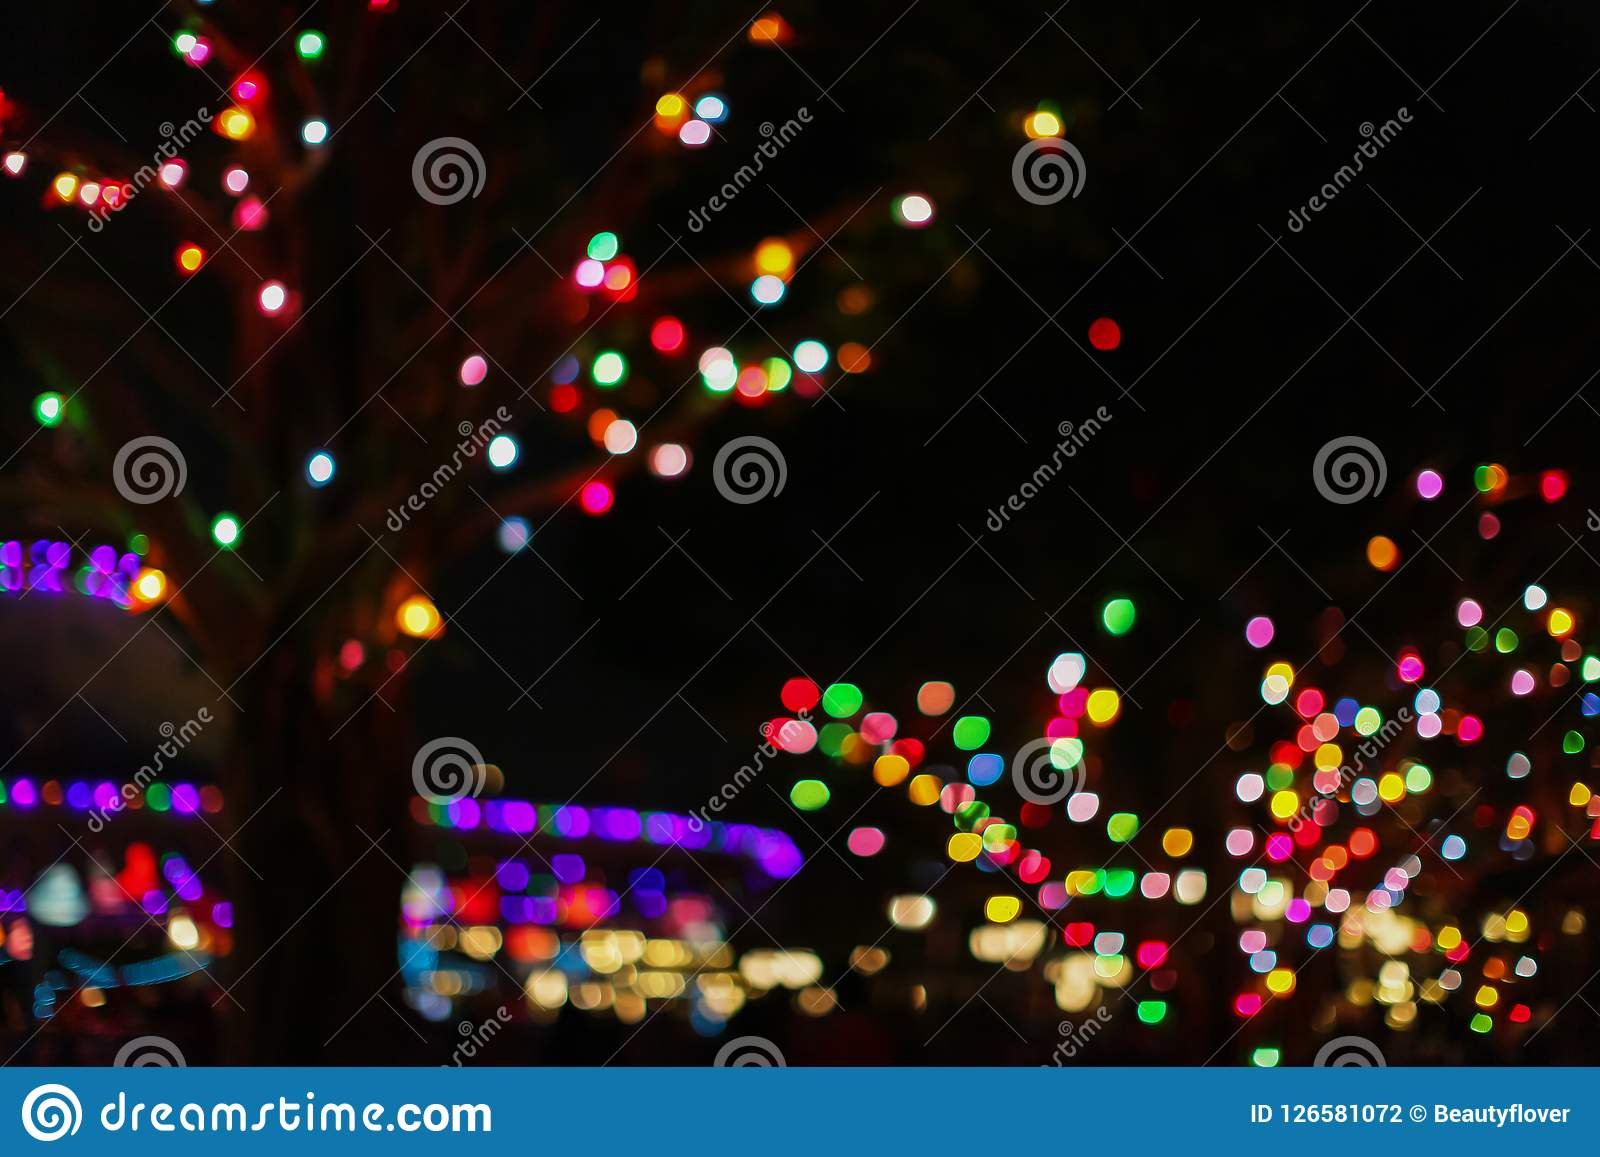 defocus the christmas city at night colorful colored garland on the trees abstract blurred backdrop